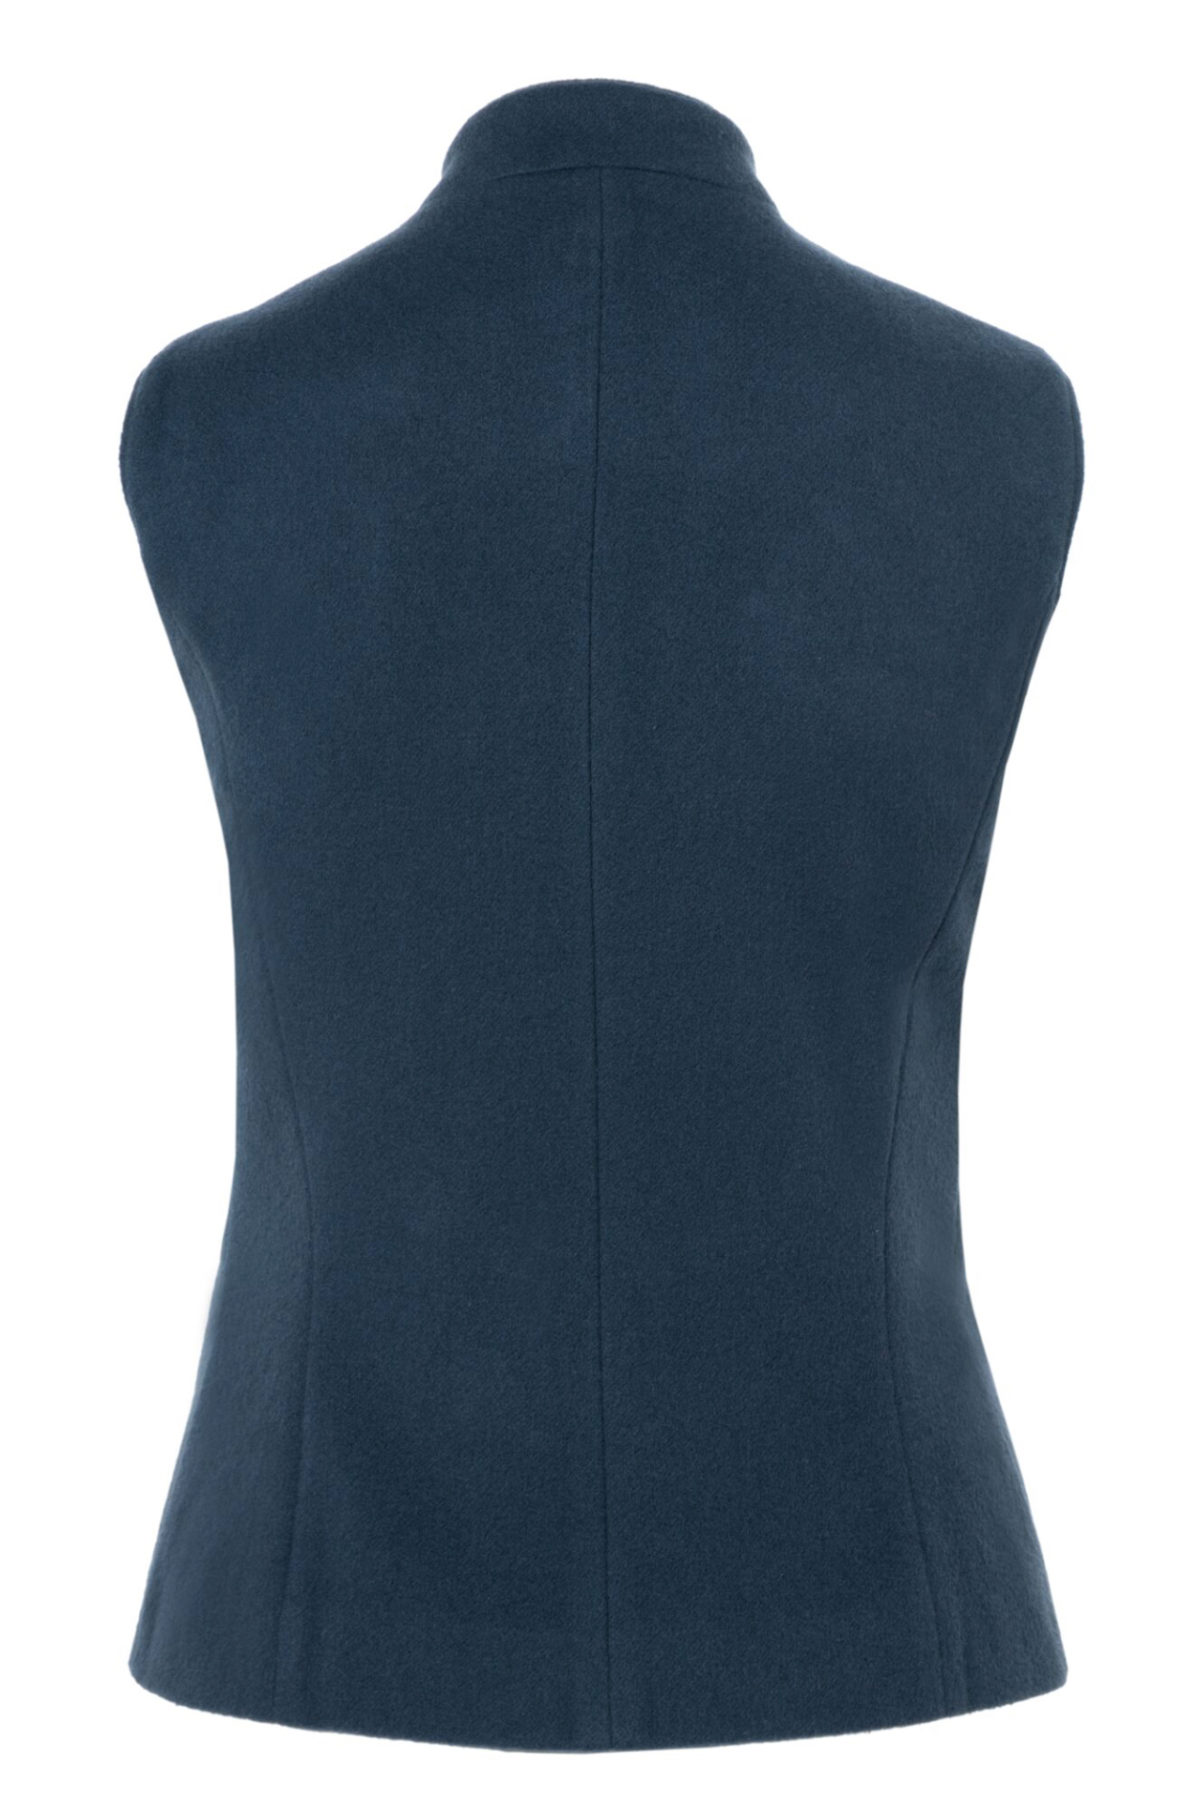 Pip Howeson Annie Waistcoat Pale Blue Back